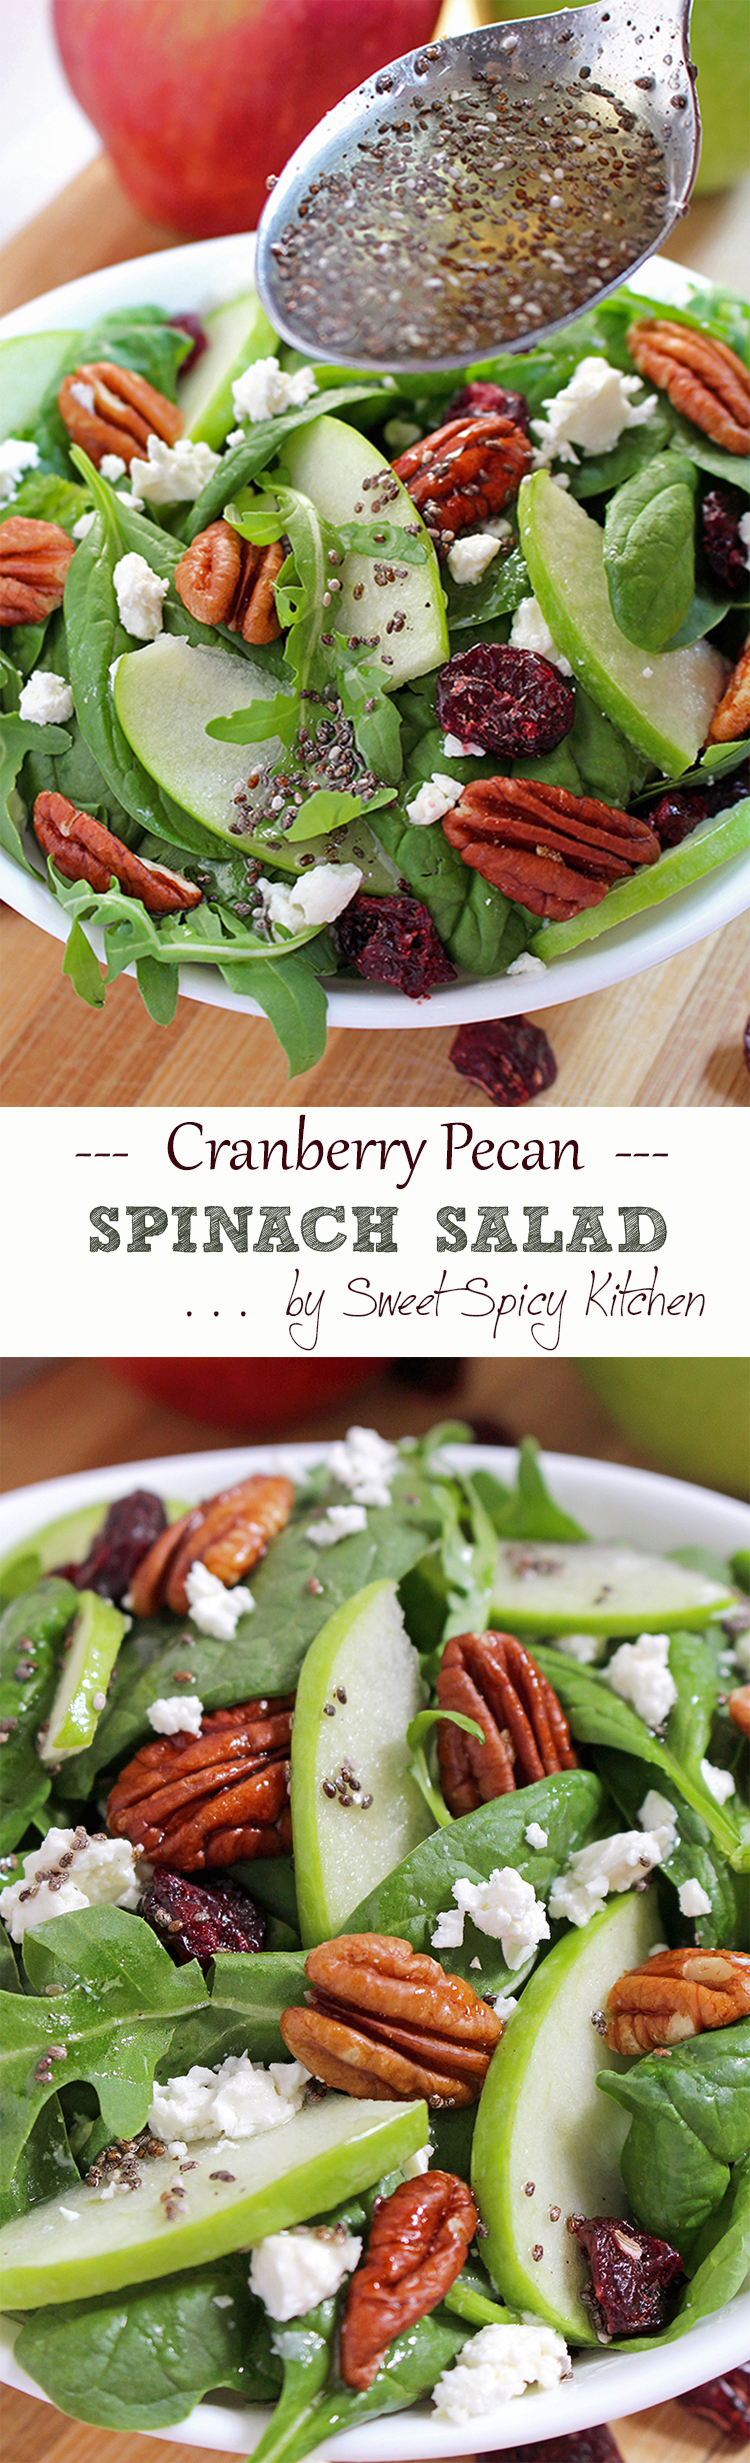 Untitled-19 Cranberry Pecan Spinach Salad